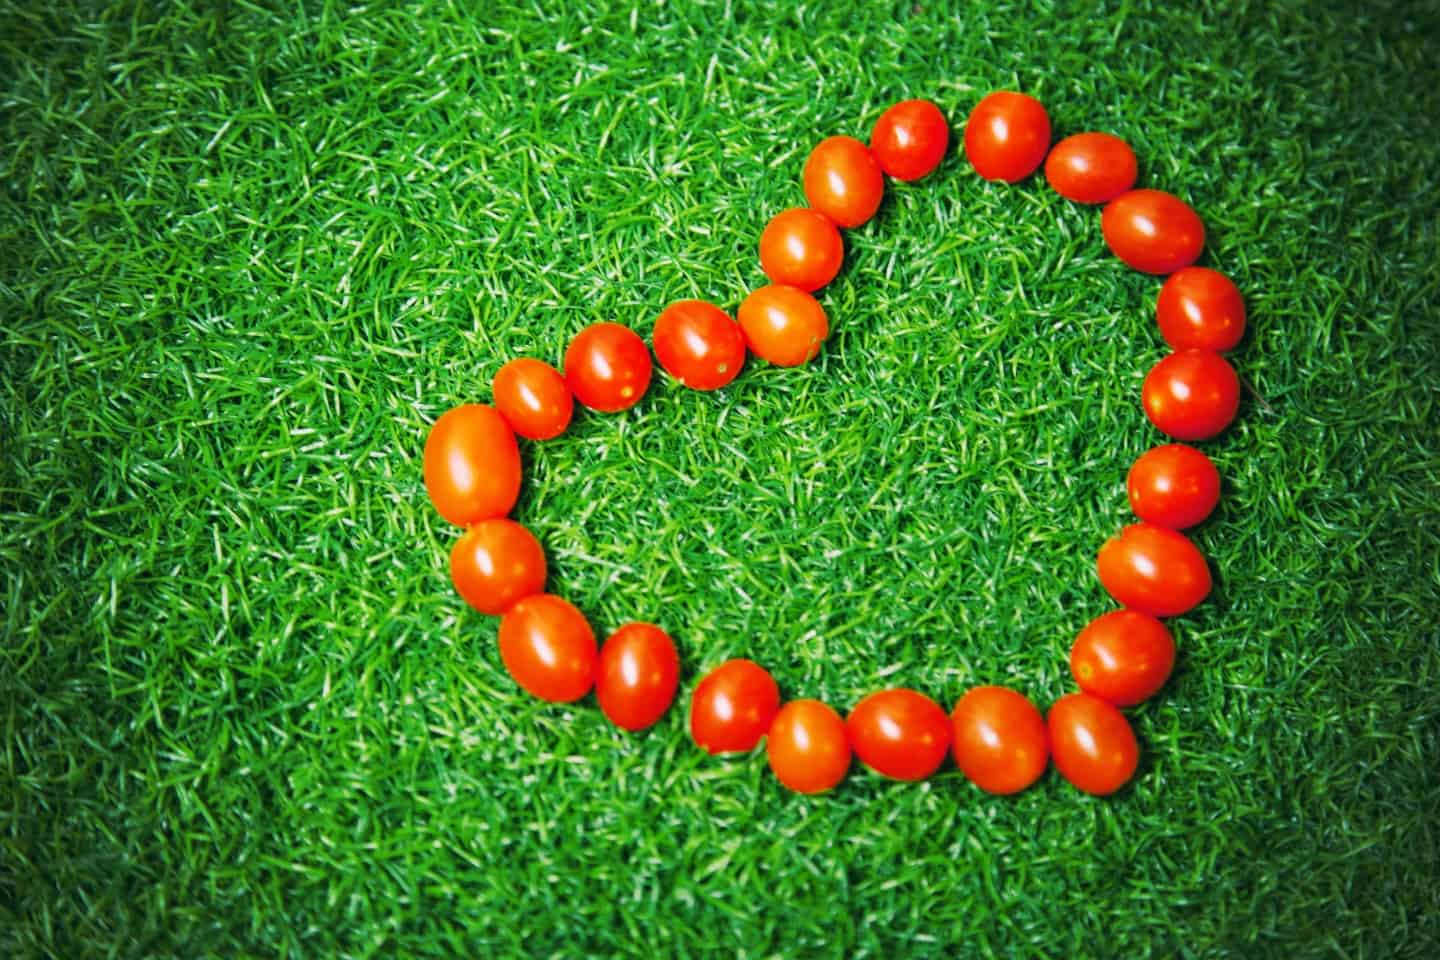 cherry tomatoes in a heart shape on grass